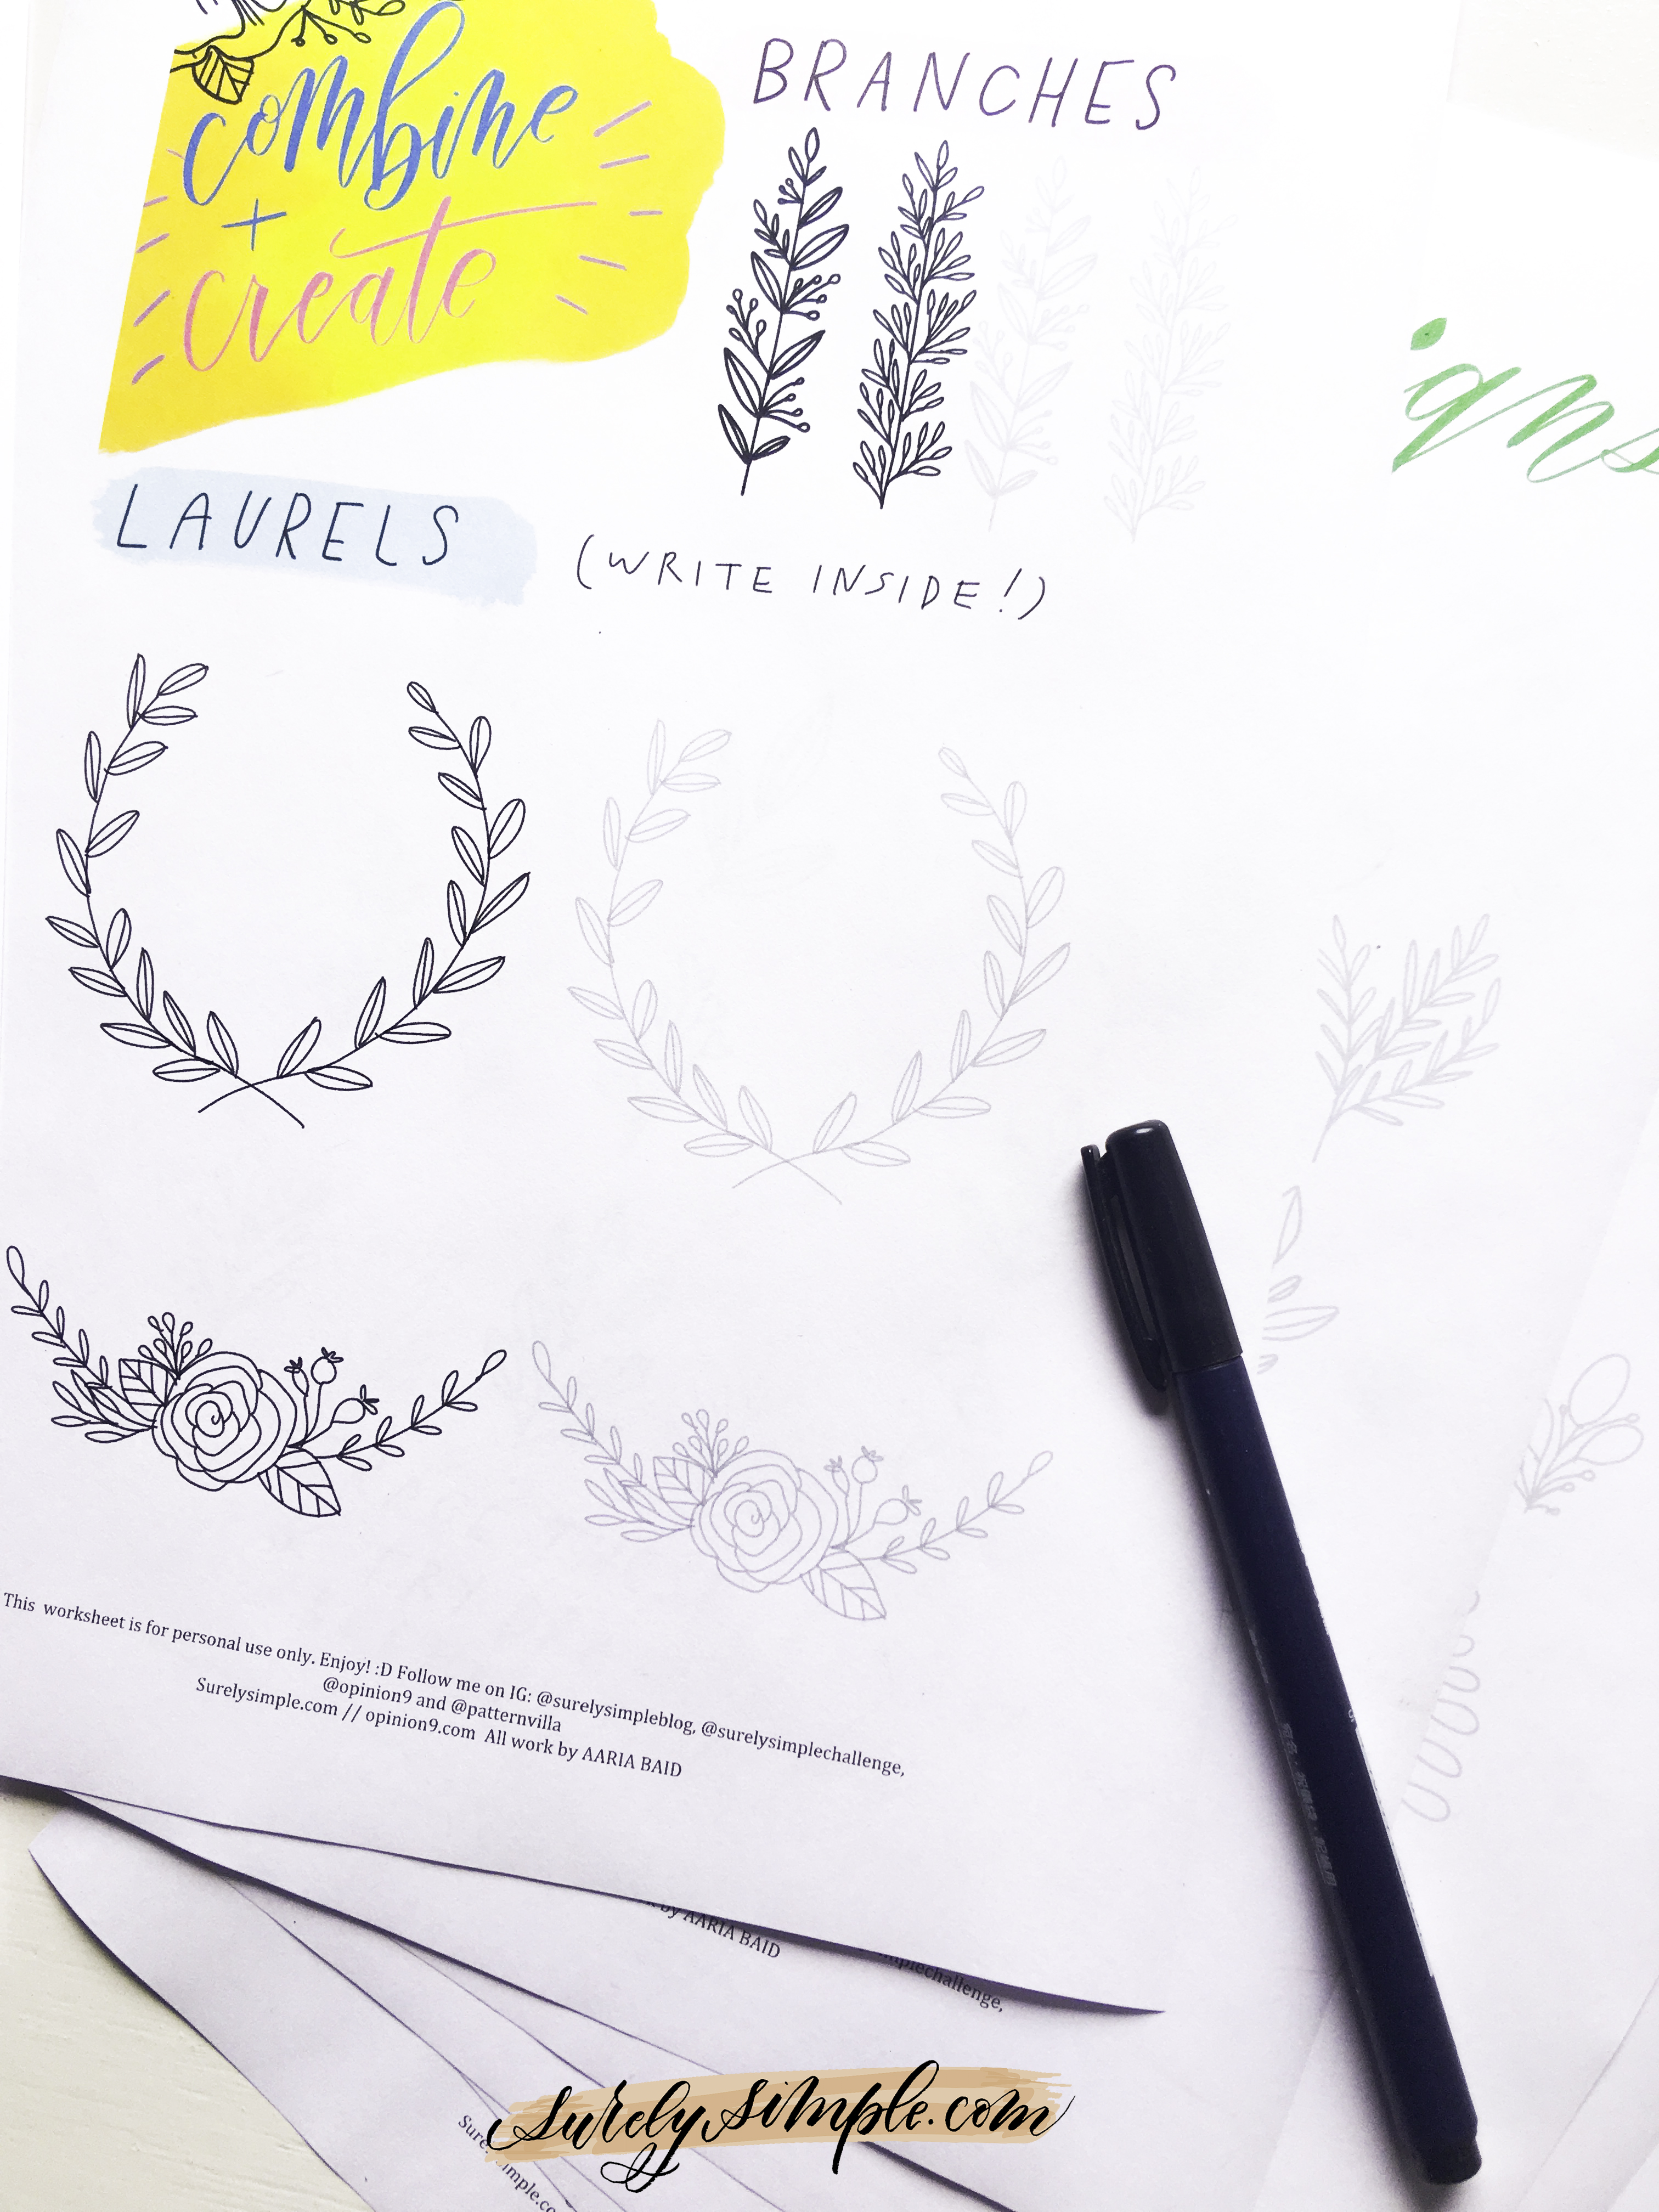 Free Download: Surely Simple Floral Doodles Worksheet! via Surely Simple.com